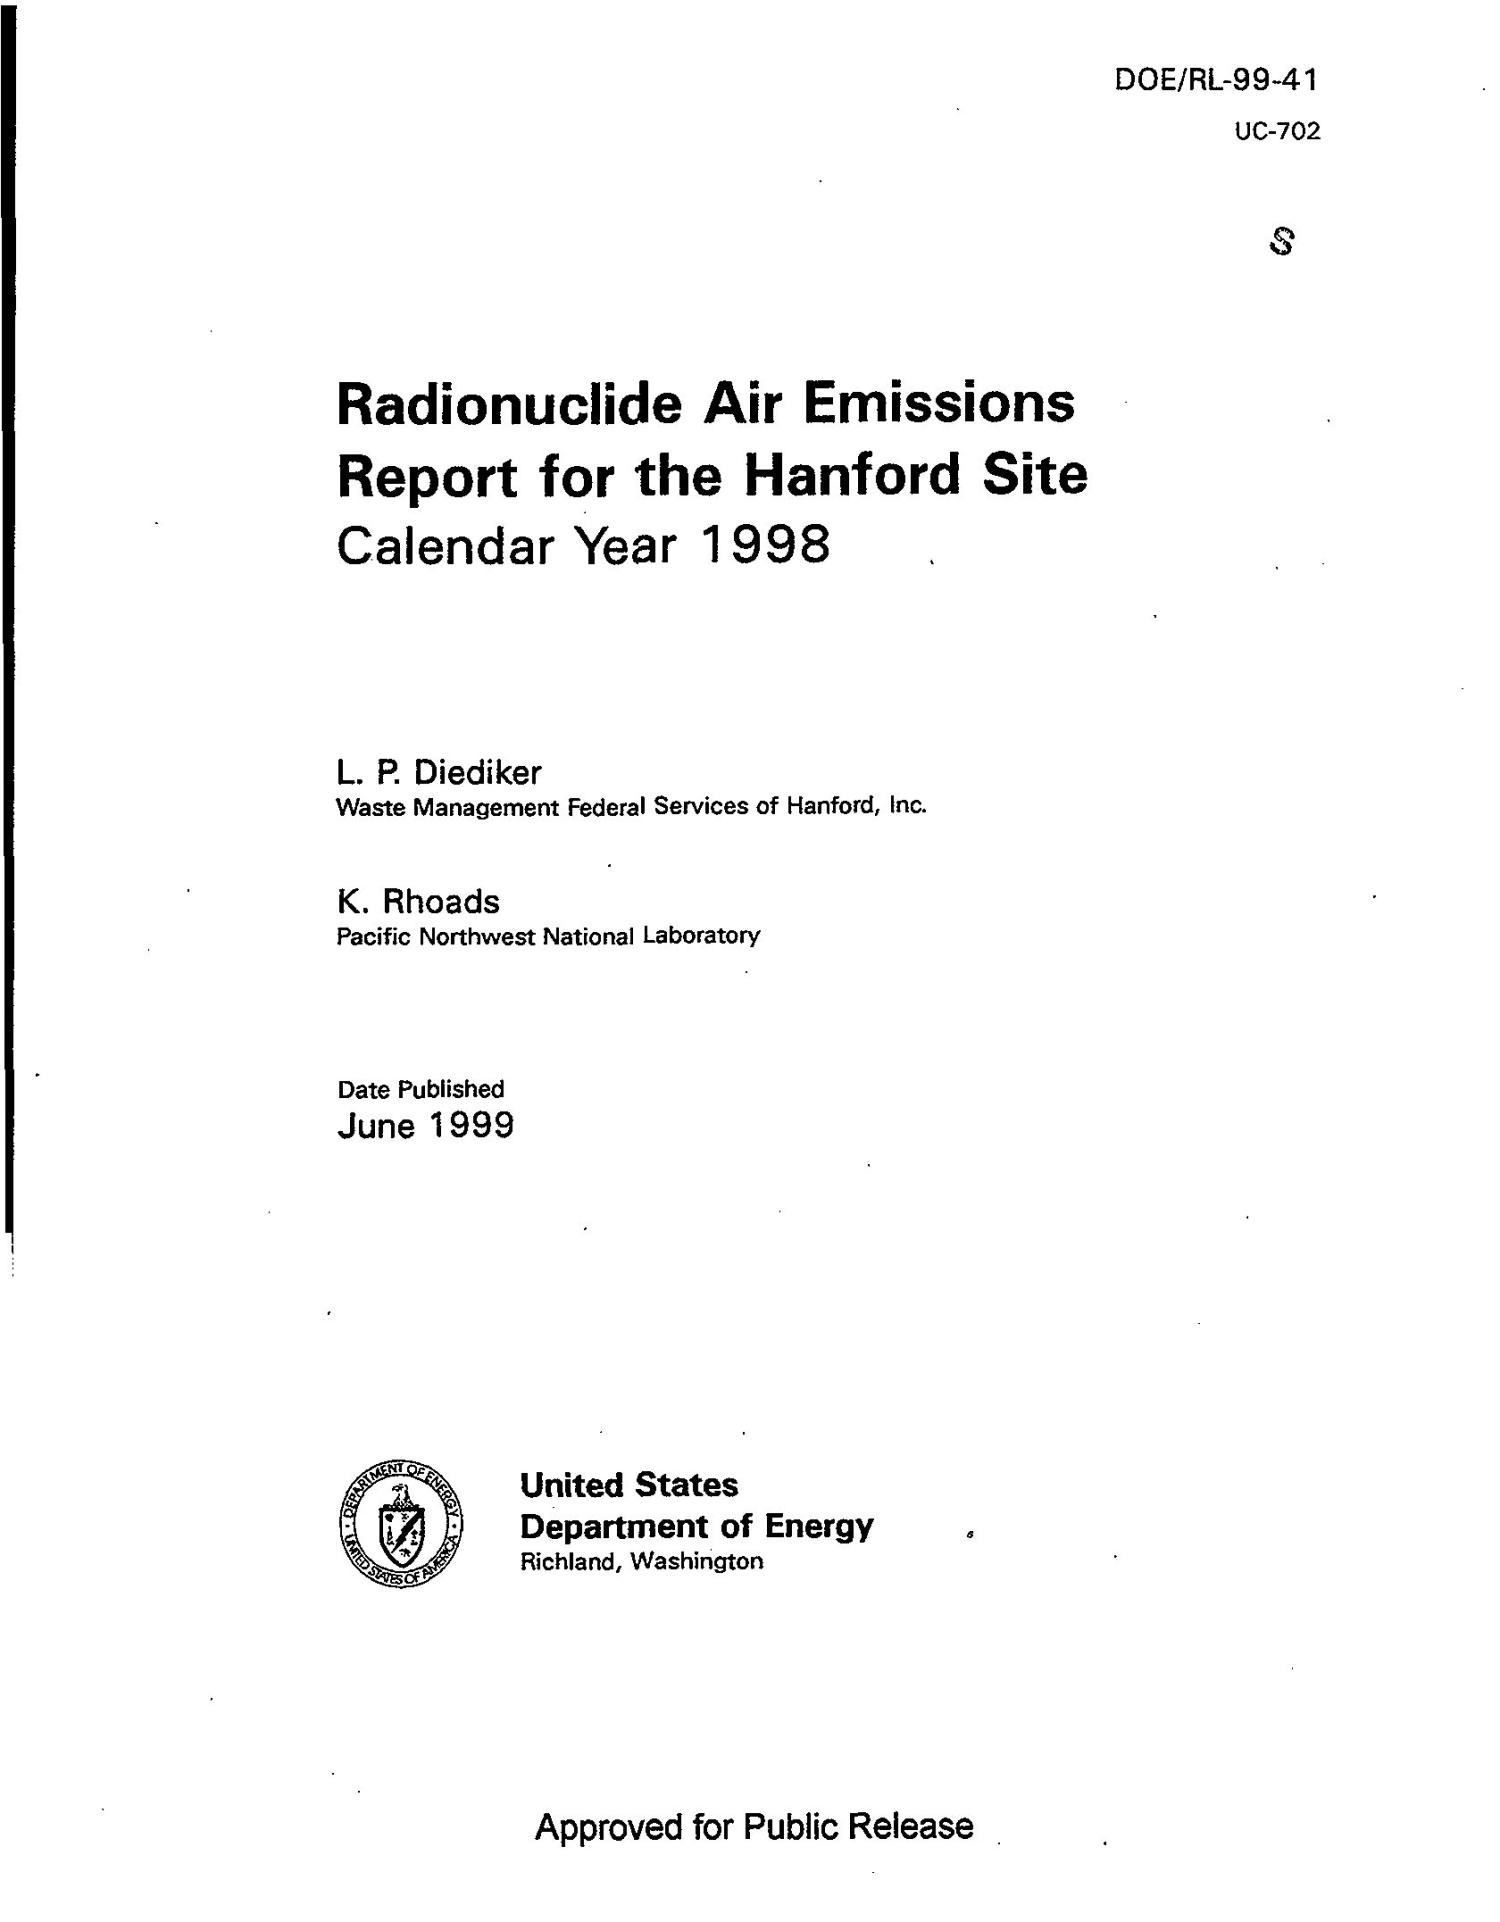 Radionuclide Air Emissions Report for the Hanford Site Calendar year 1998                                                                                                      [Sequence #]: 5 of 144